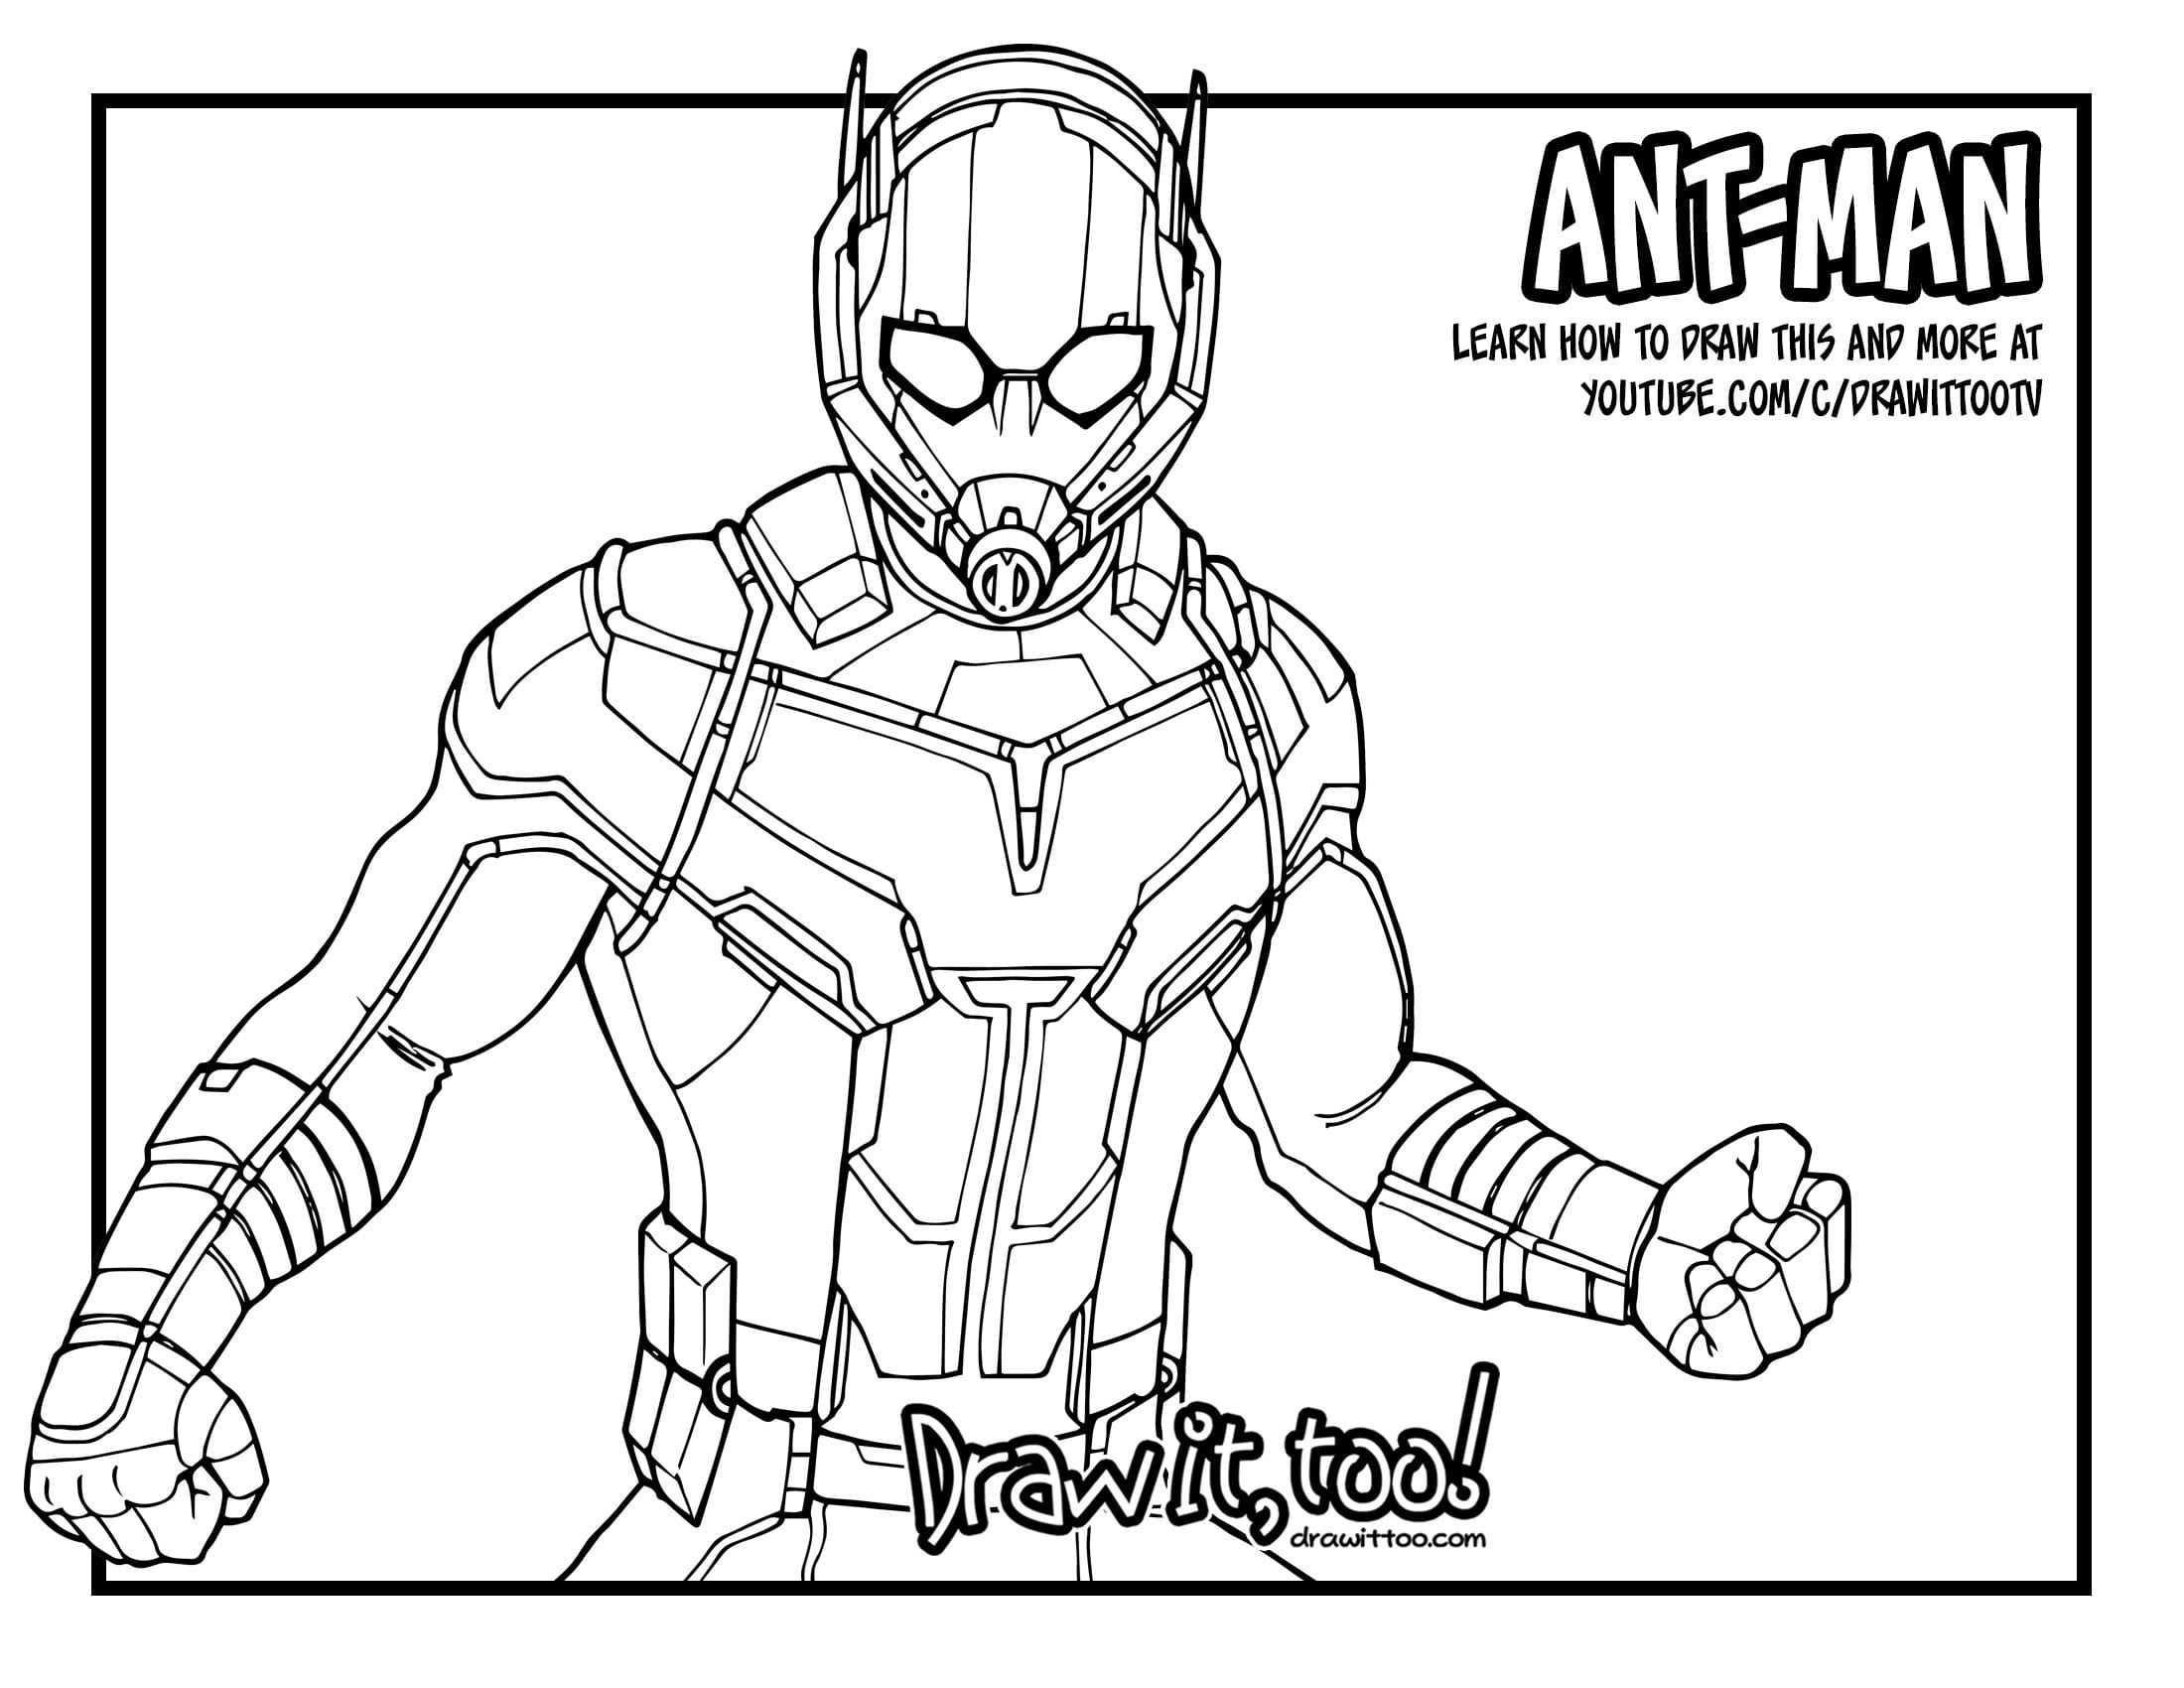 Ant Man Coloring Pages Freecolorngpages Co For